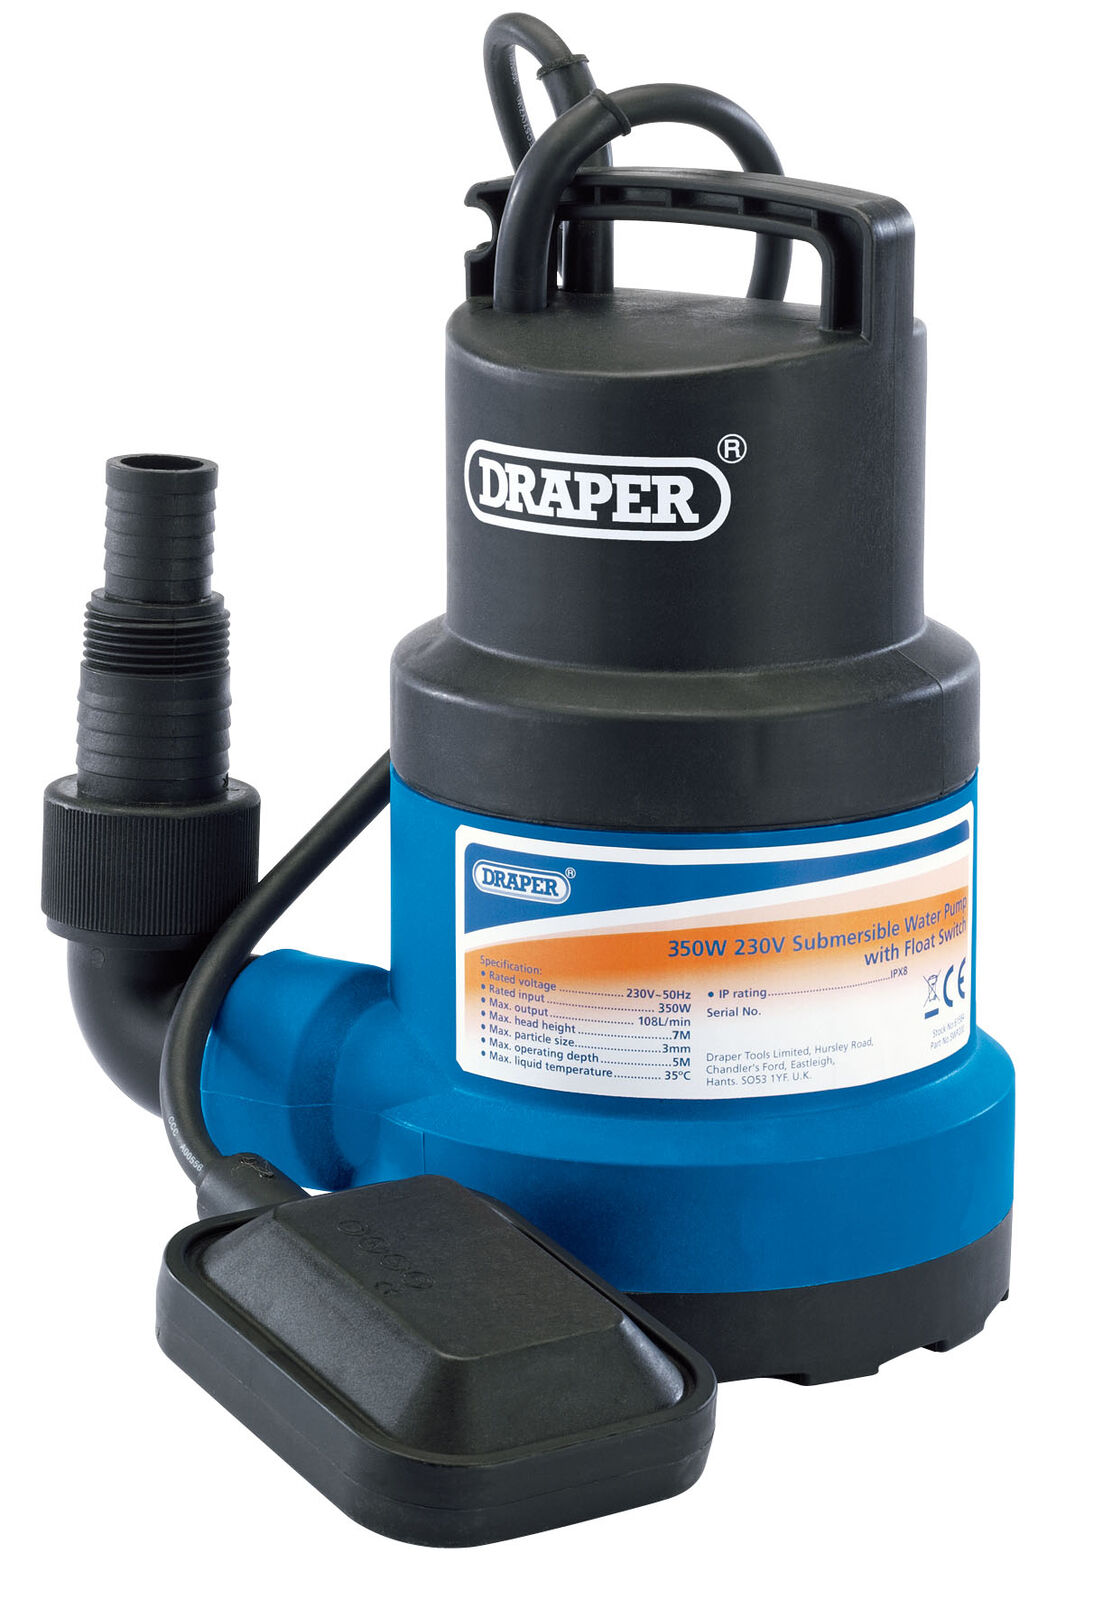 125L/Min Submersible Water Pump With Float Switch (350W) Draper 61668